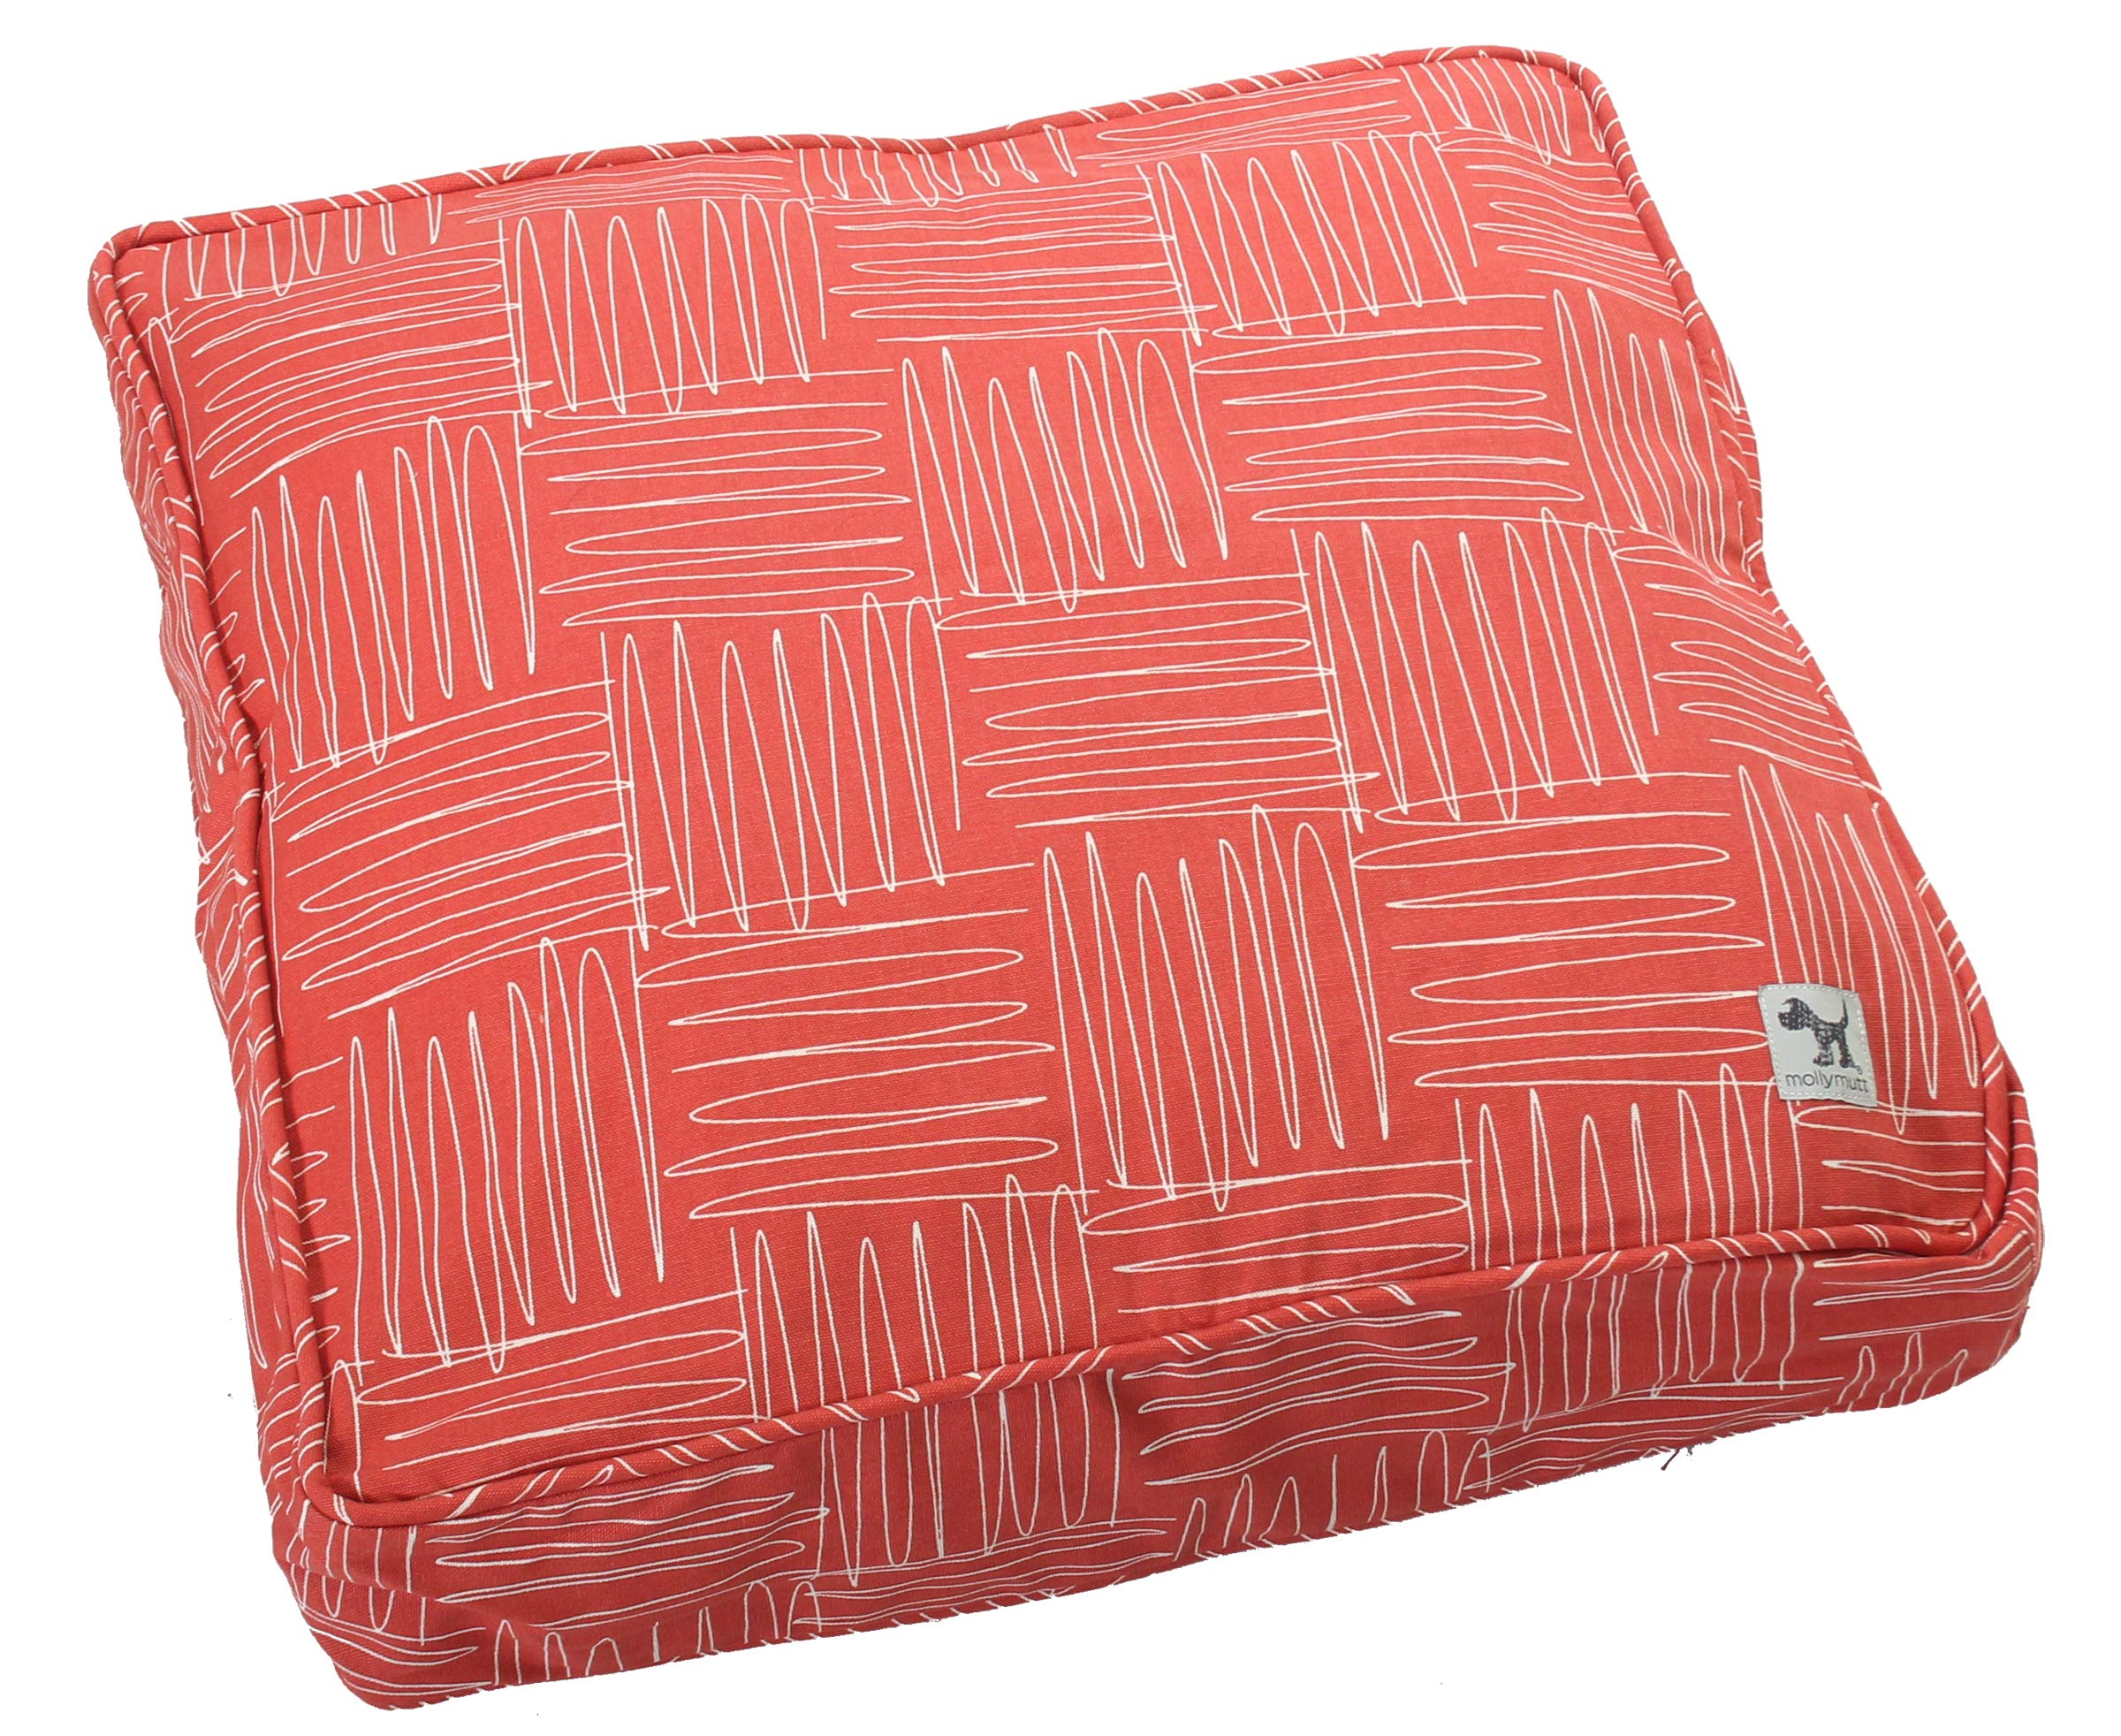 Molly Mutt Jitterbug Dog Bed Duvet Cover, Huge - 100% Cotton, Durable, Washable by Molly Mutt